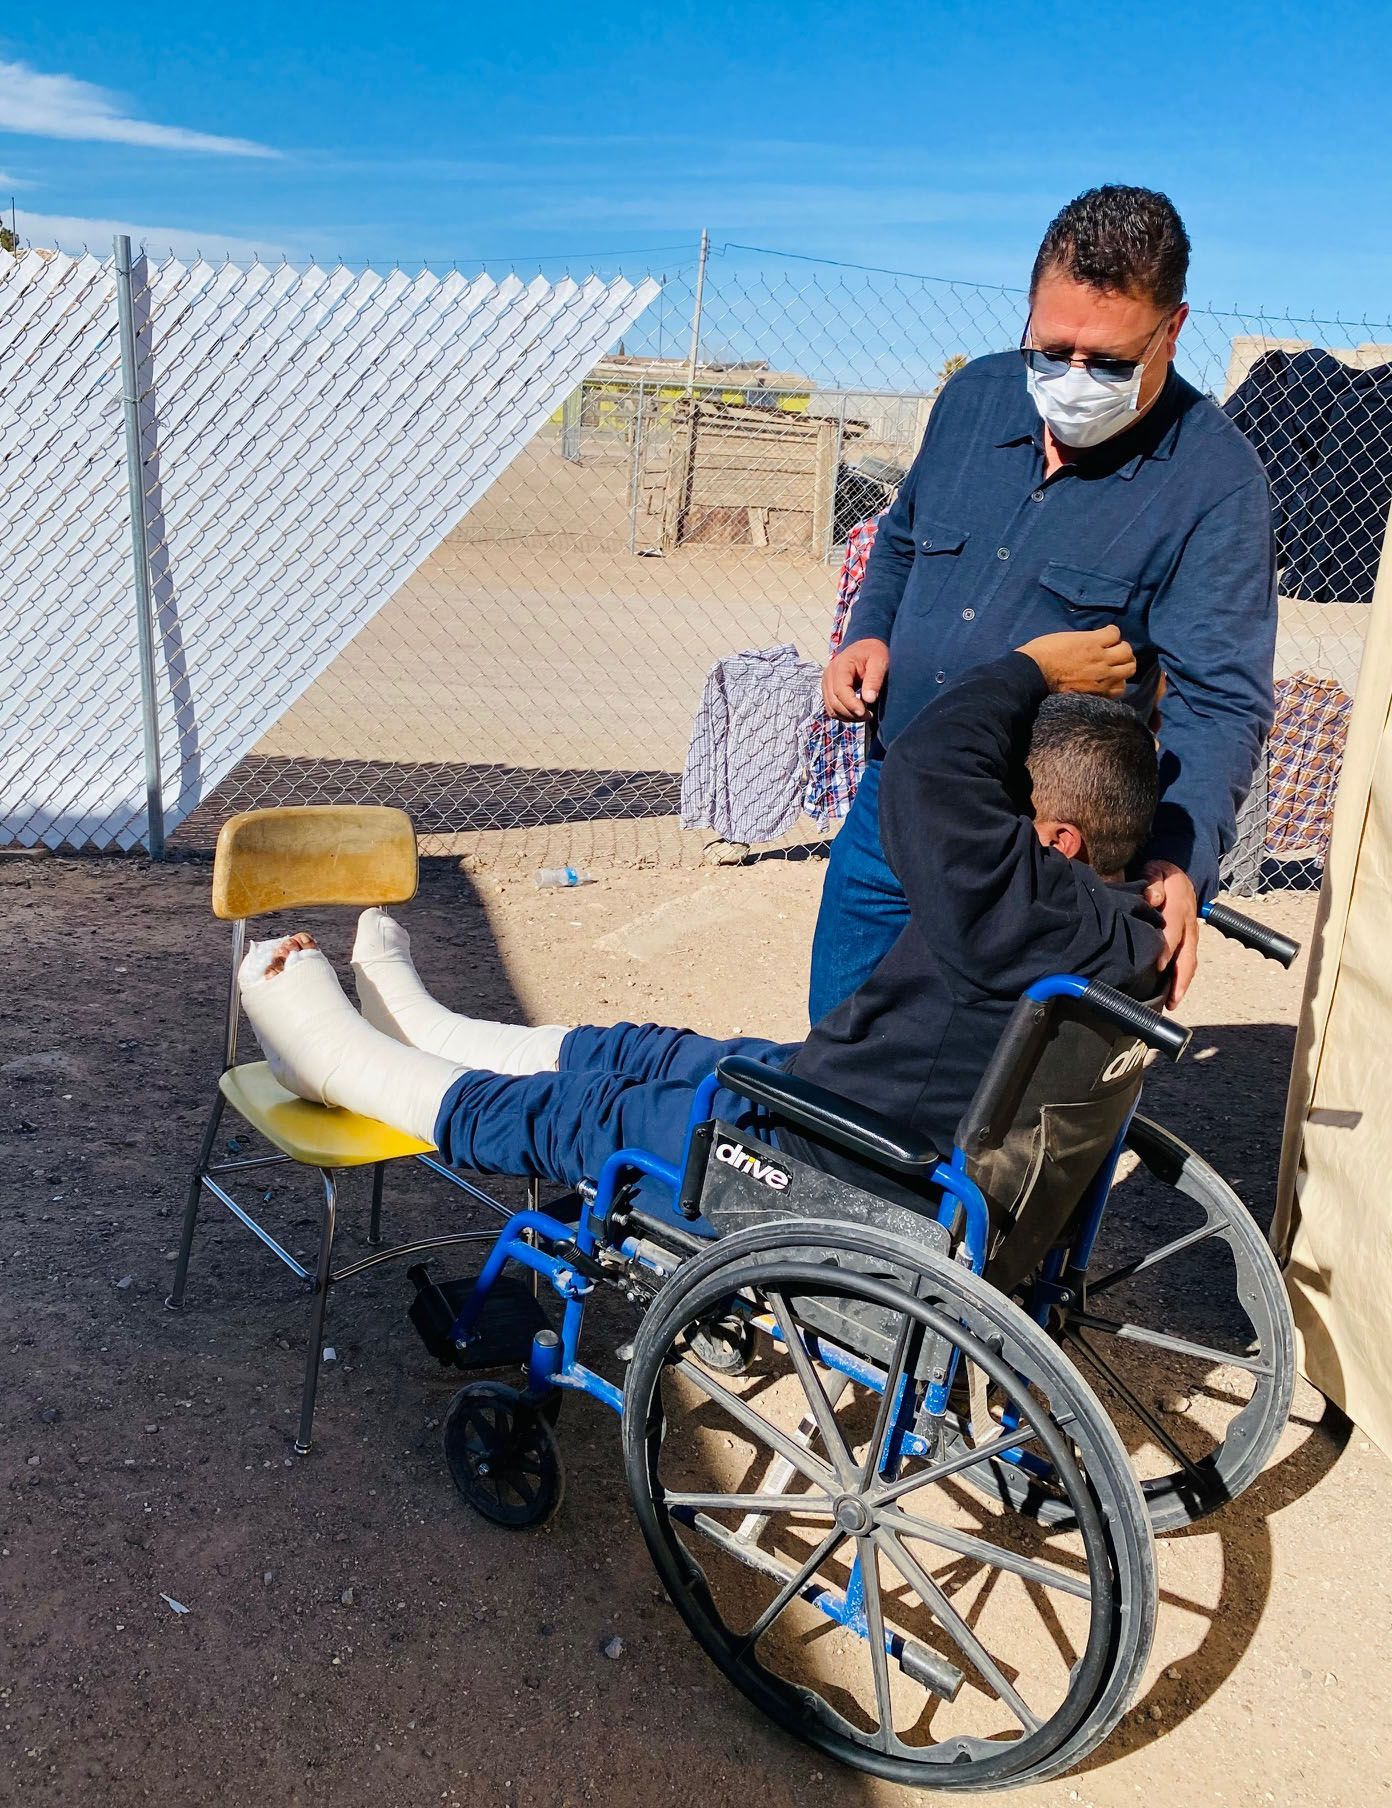 Pastor Rosalio Sosa, who runs the Red de Albergues Para Migrantes, or RAM, a network of migrant shelters in Palomas in the Mexican state of Chihuahua, on Tuesday consoles Pedro Gomez, a migrant from Guatemala who has two broken ankles he says he got when he fell off of the border wall,